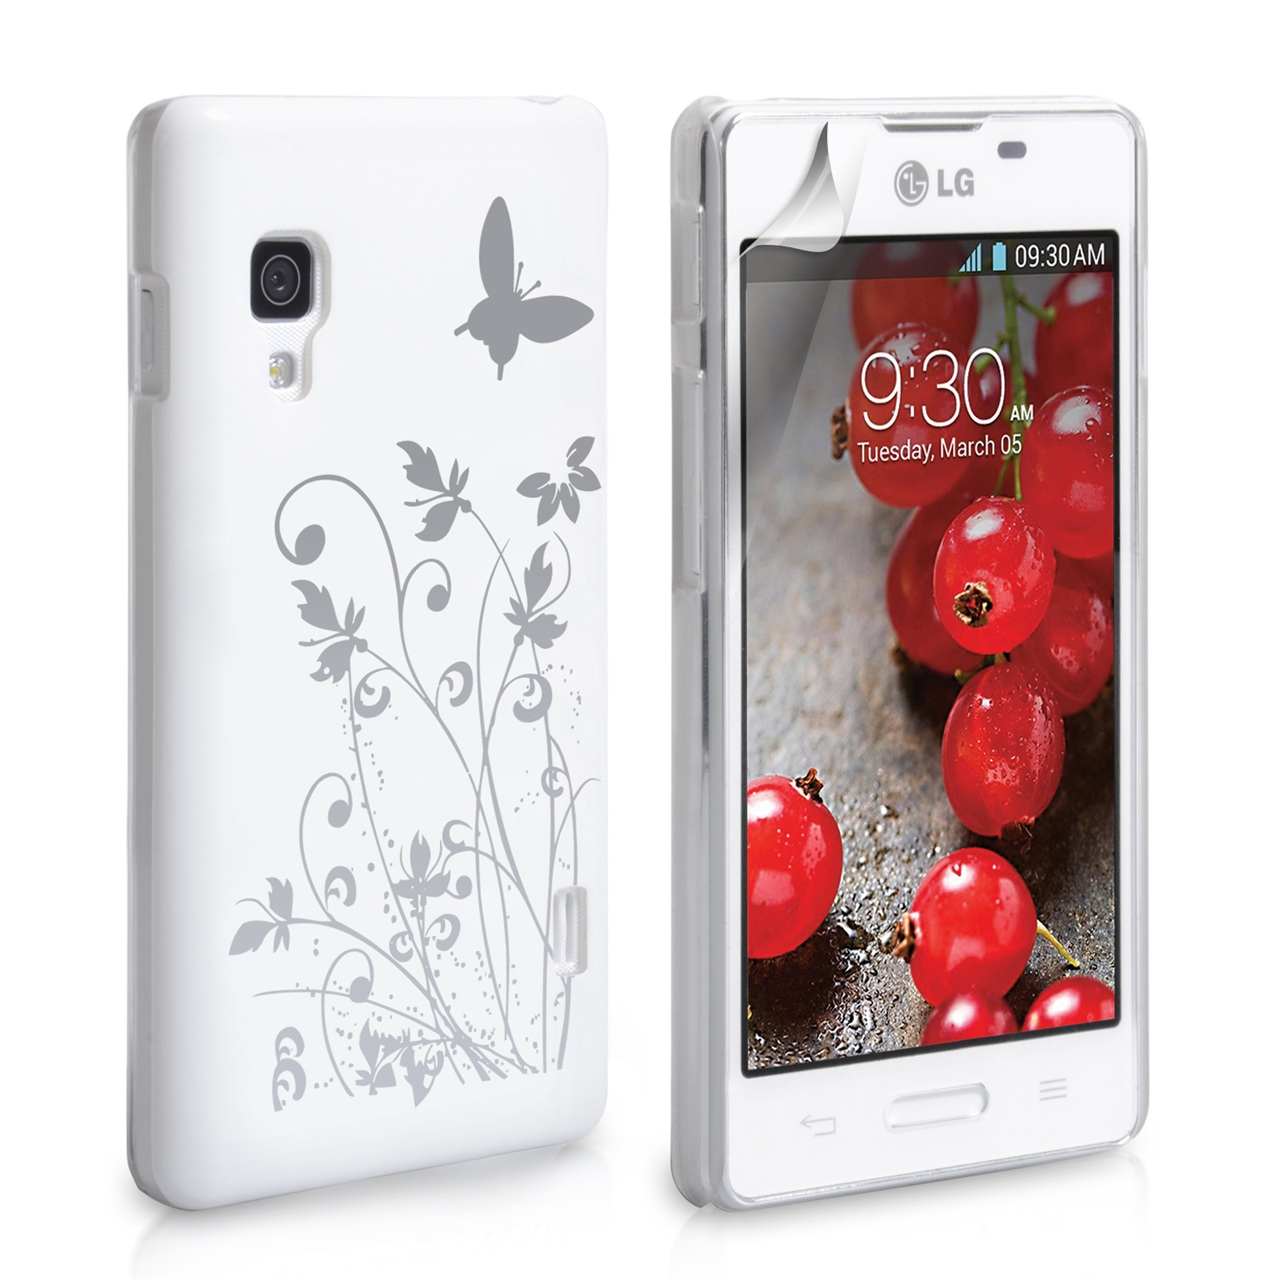 YouSave Accessories LG Optimus L5 II White Butterfly Hard Case